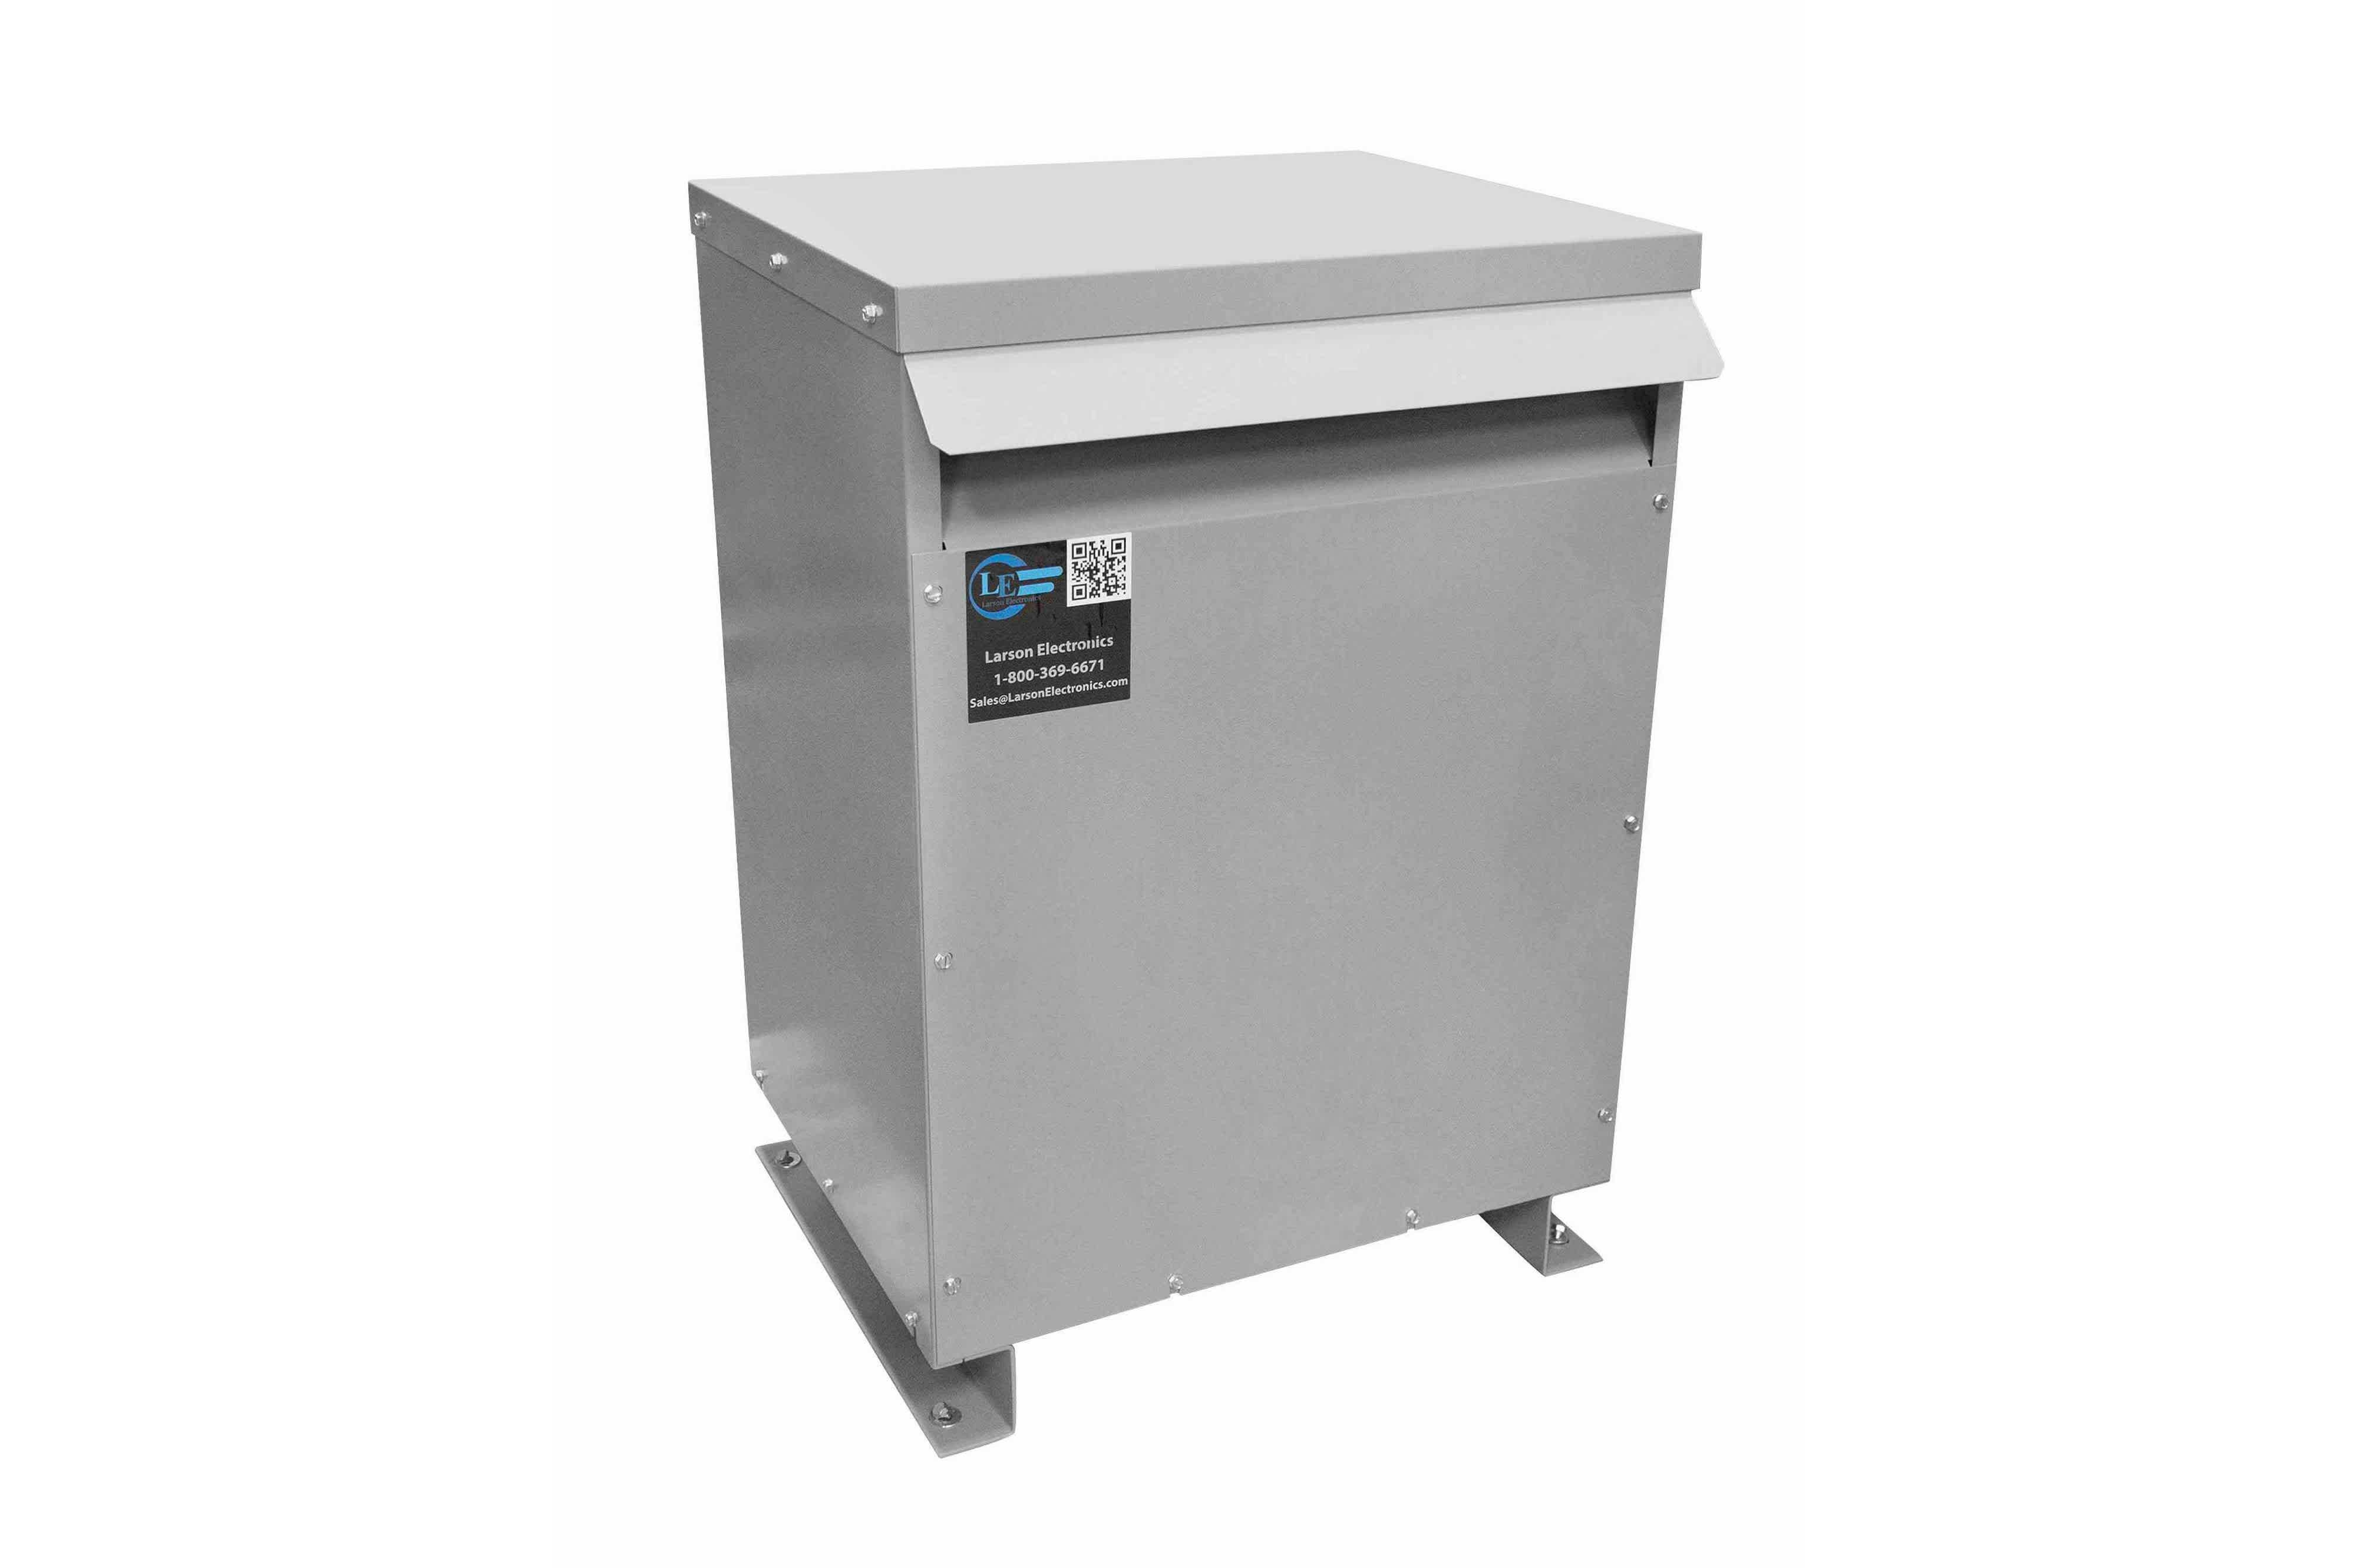 12 kVA 3PH Isolation Transformer, 380V Wye Primary, 480V Delta Secondary, N3R, Ventilated, 60 Hz